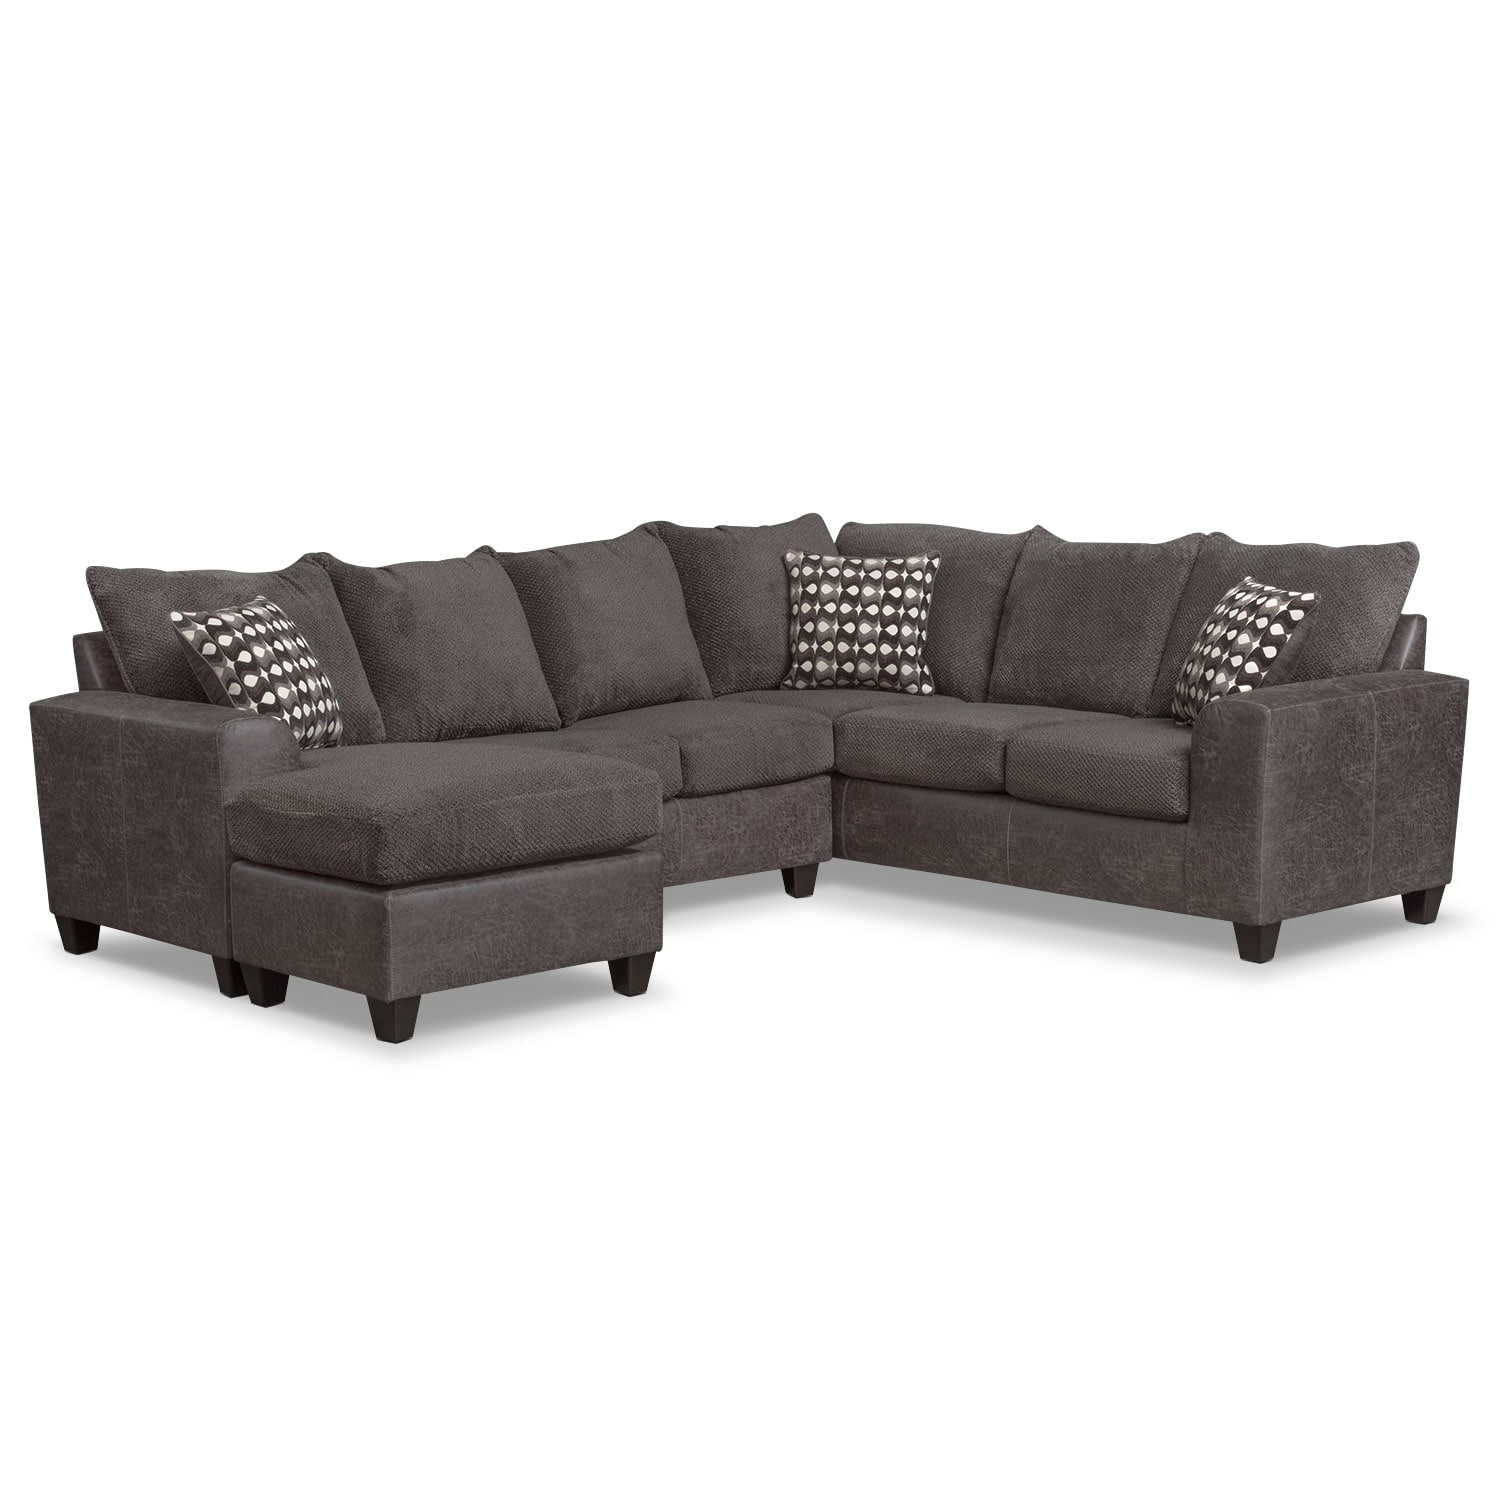 img grey new modular leather zoom shipping sectionals sale esf free sectional york